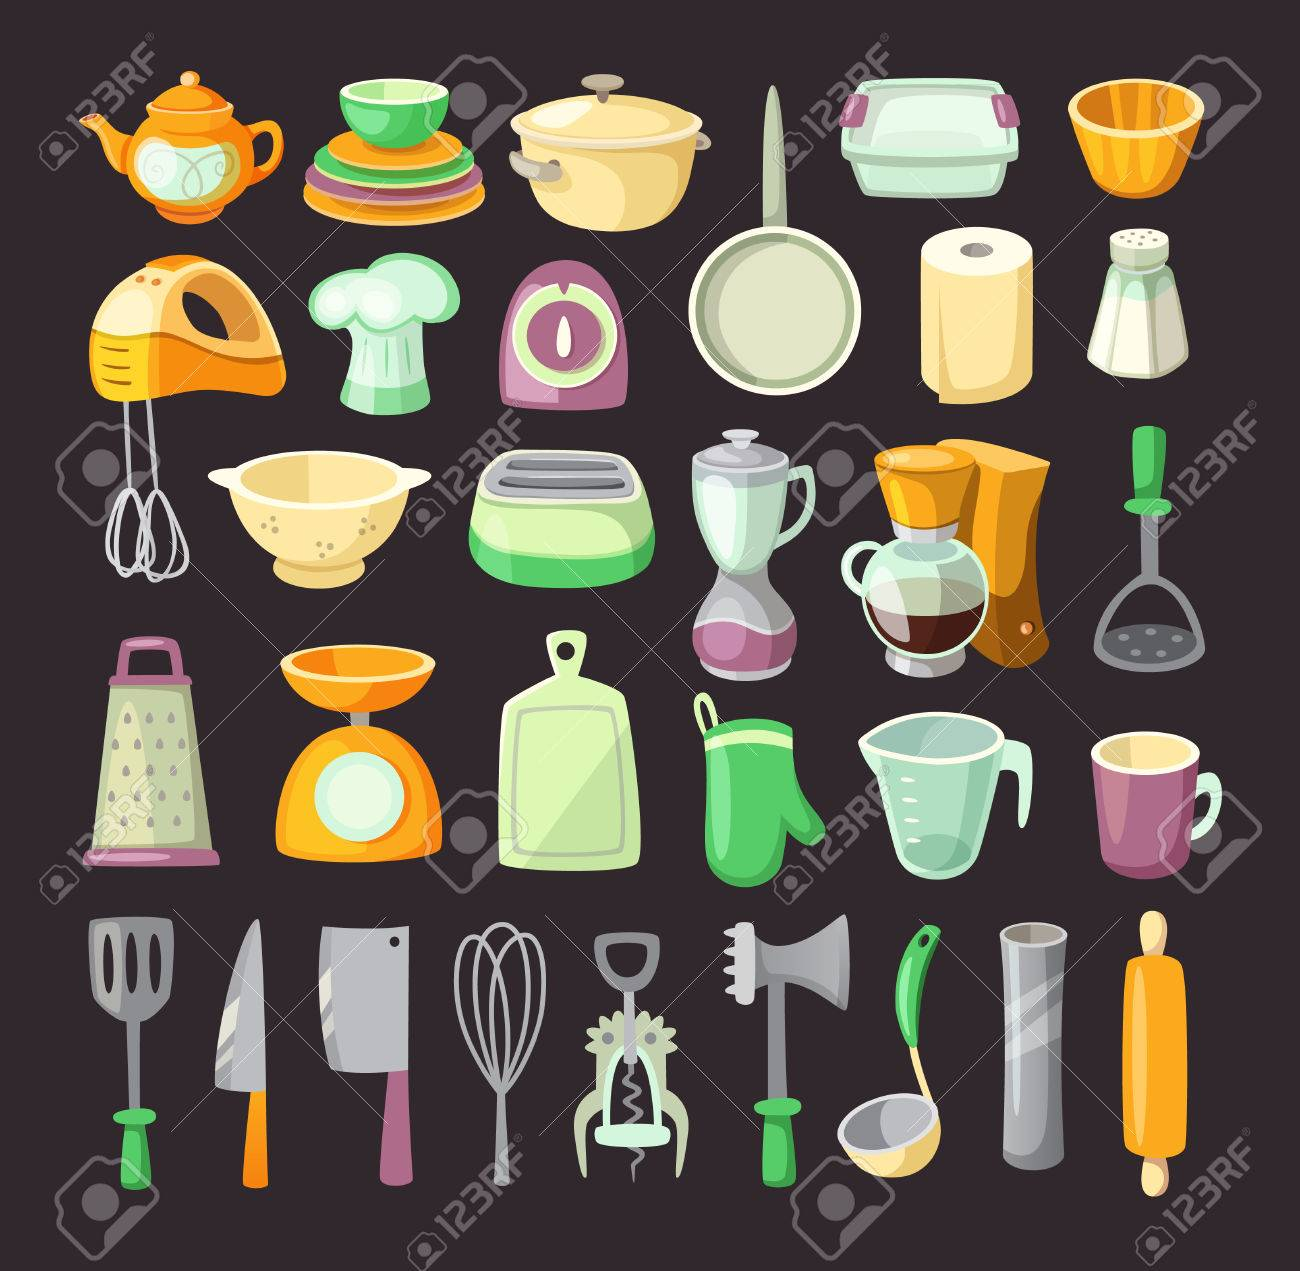 Set Of Colorful Kitchen Utensils Used For Cooking Breakfats Or